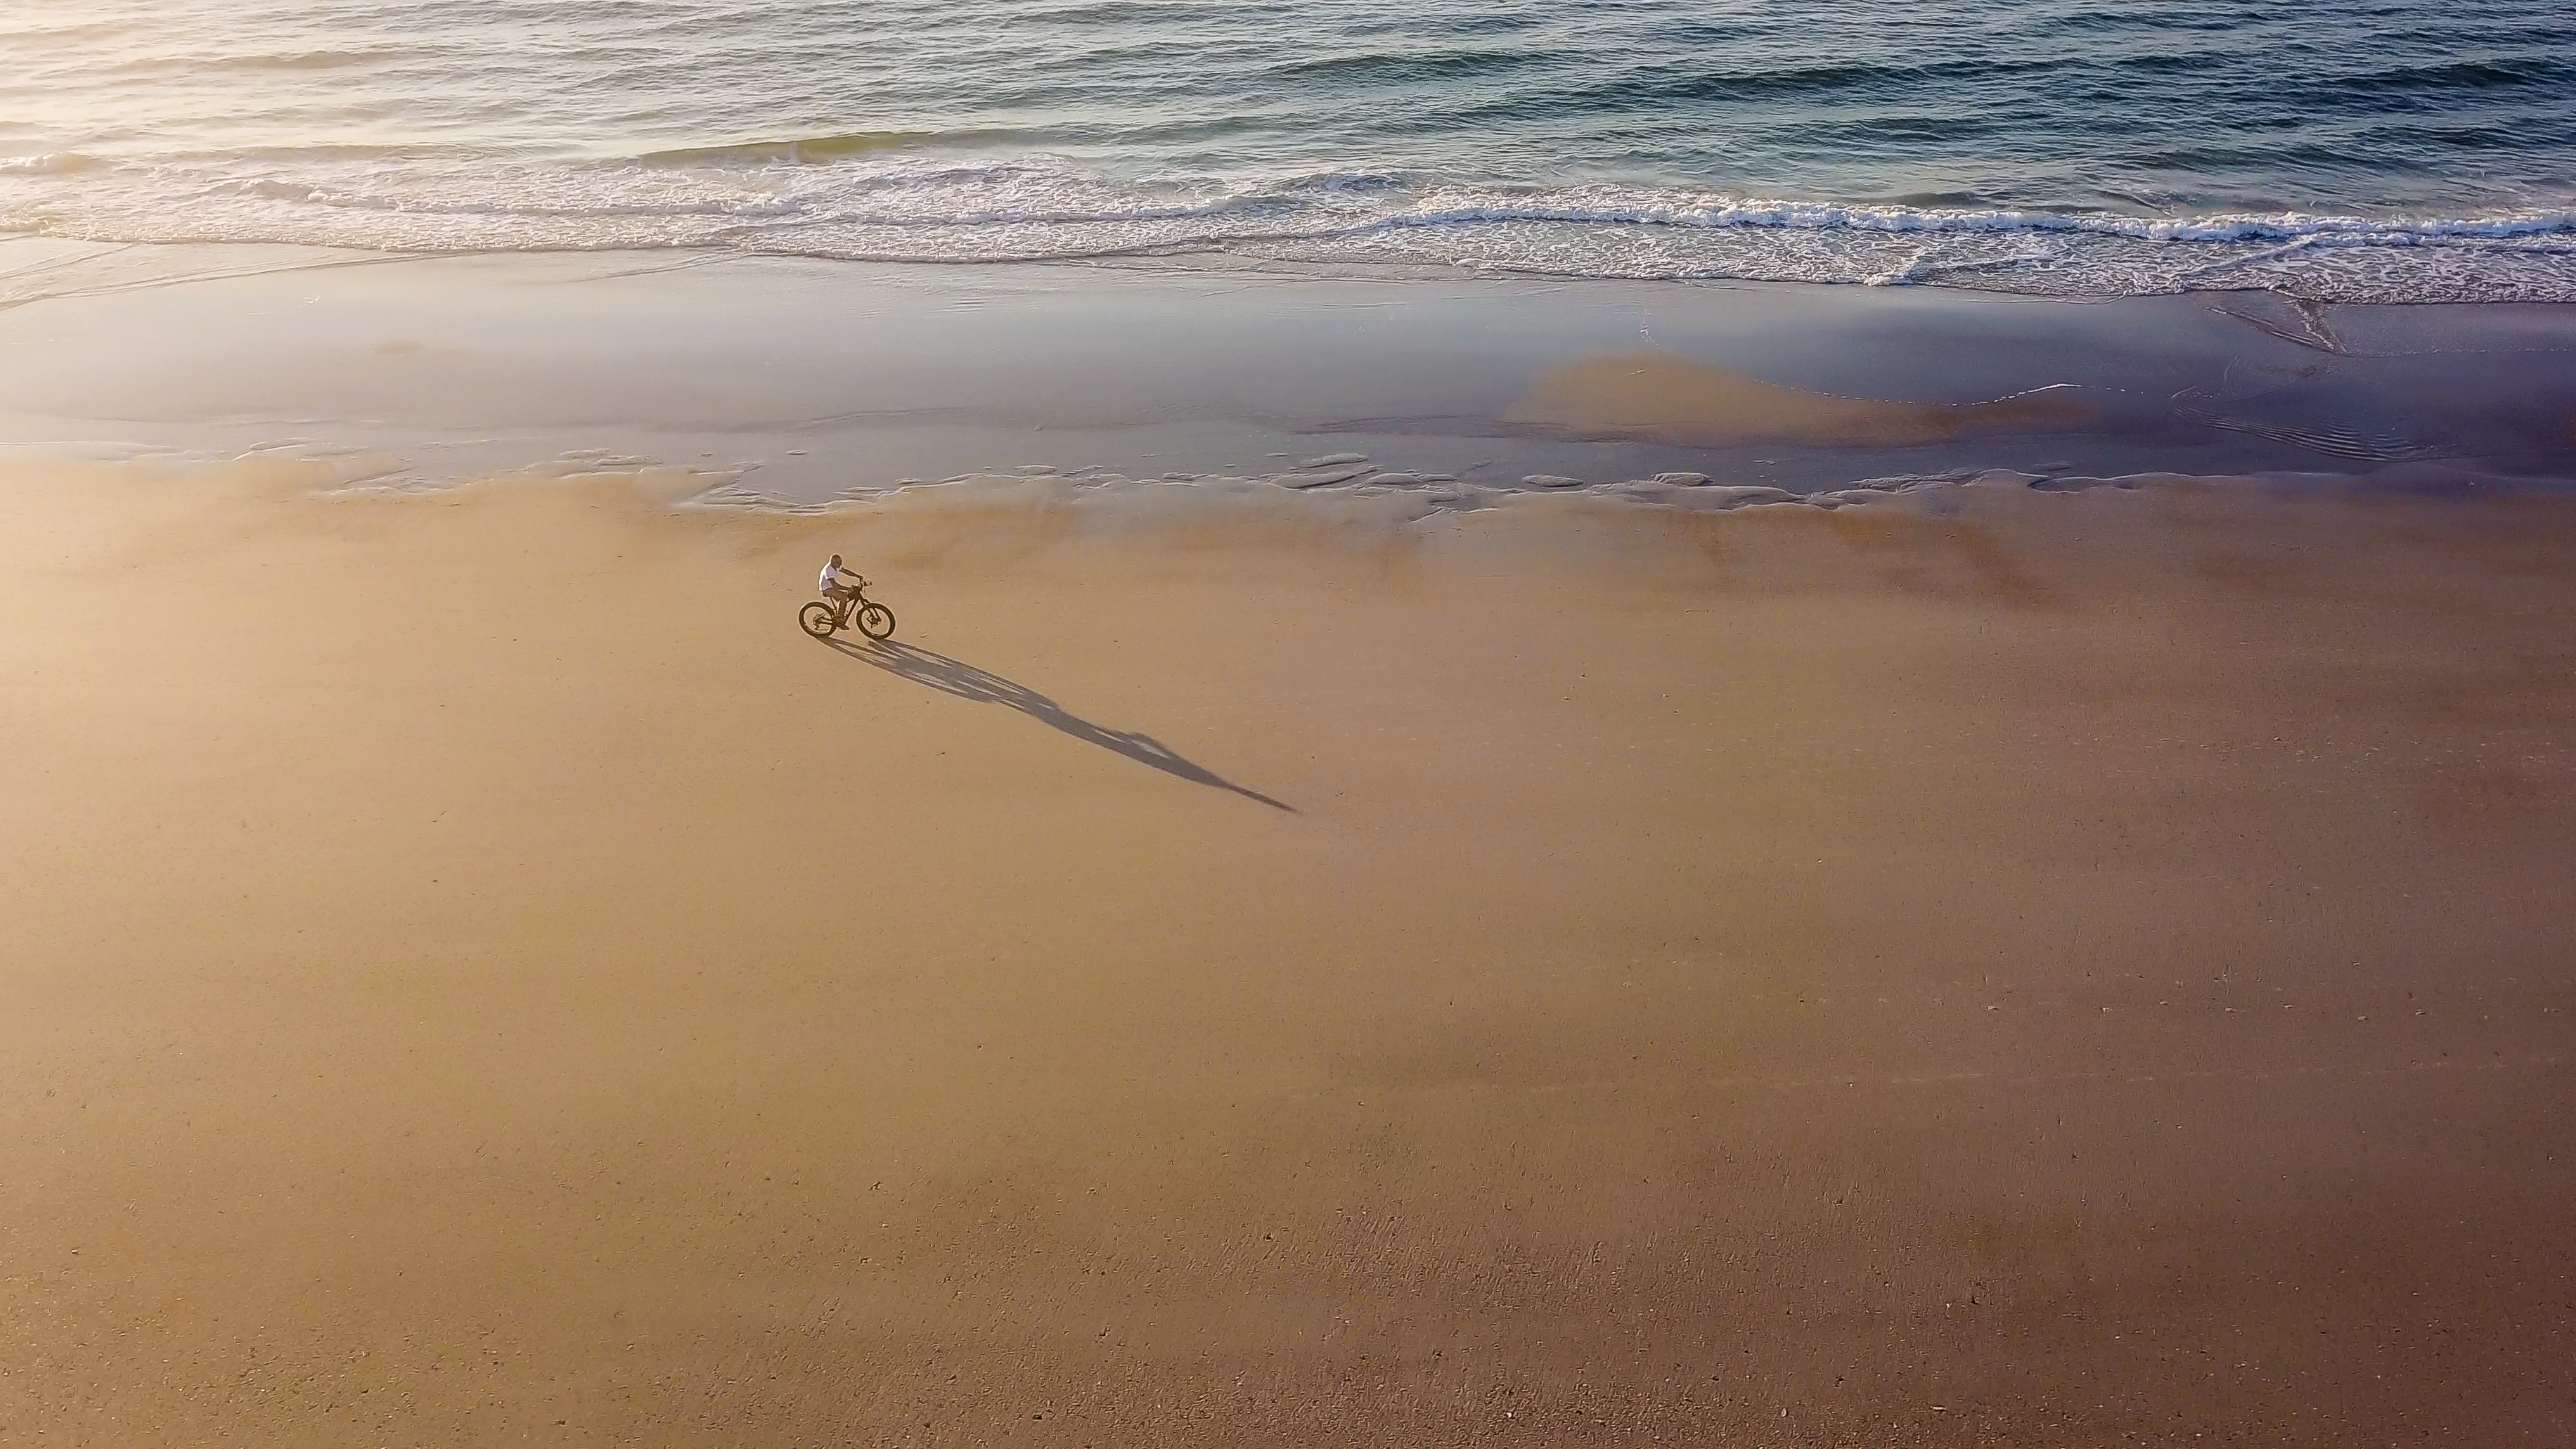 A-Man-Riding-His-Bike-on-the-Beach-x-OC-wallpaper-wp5203673